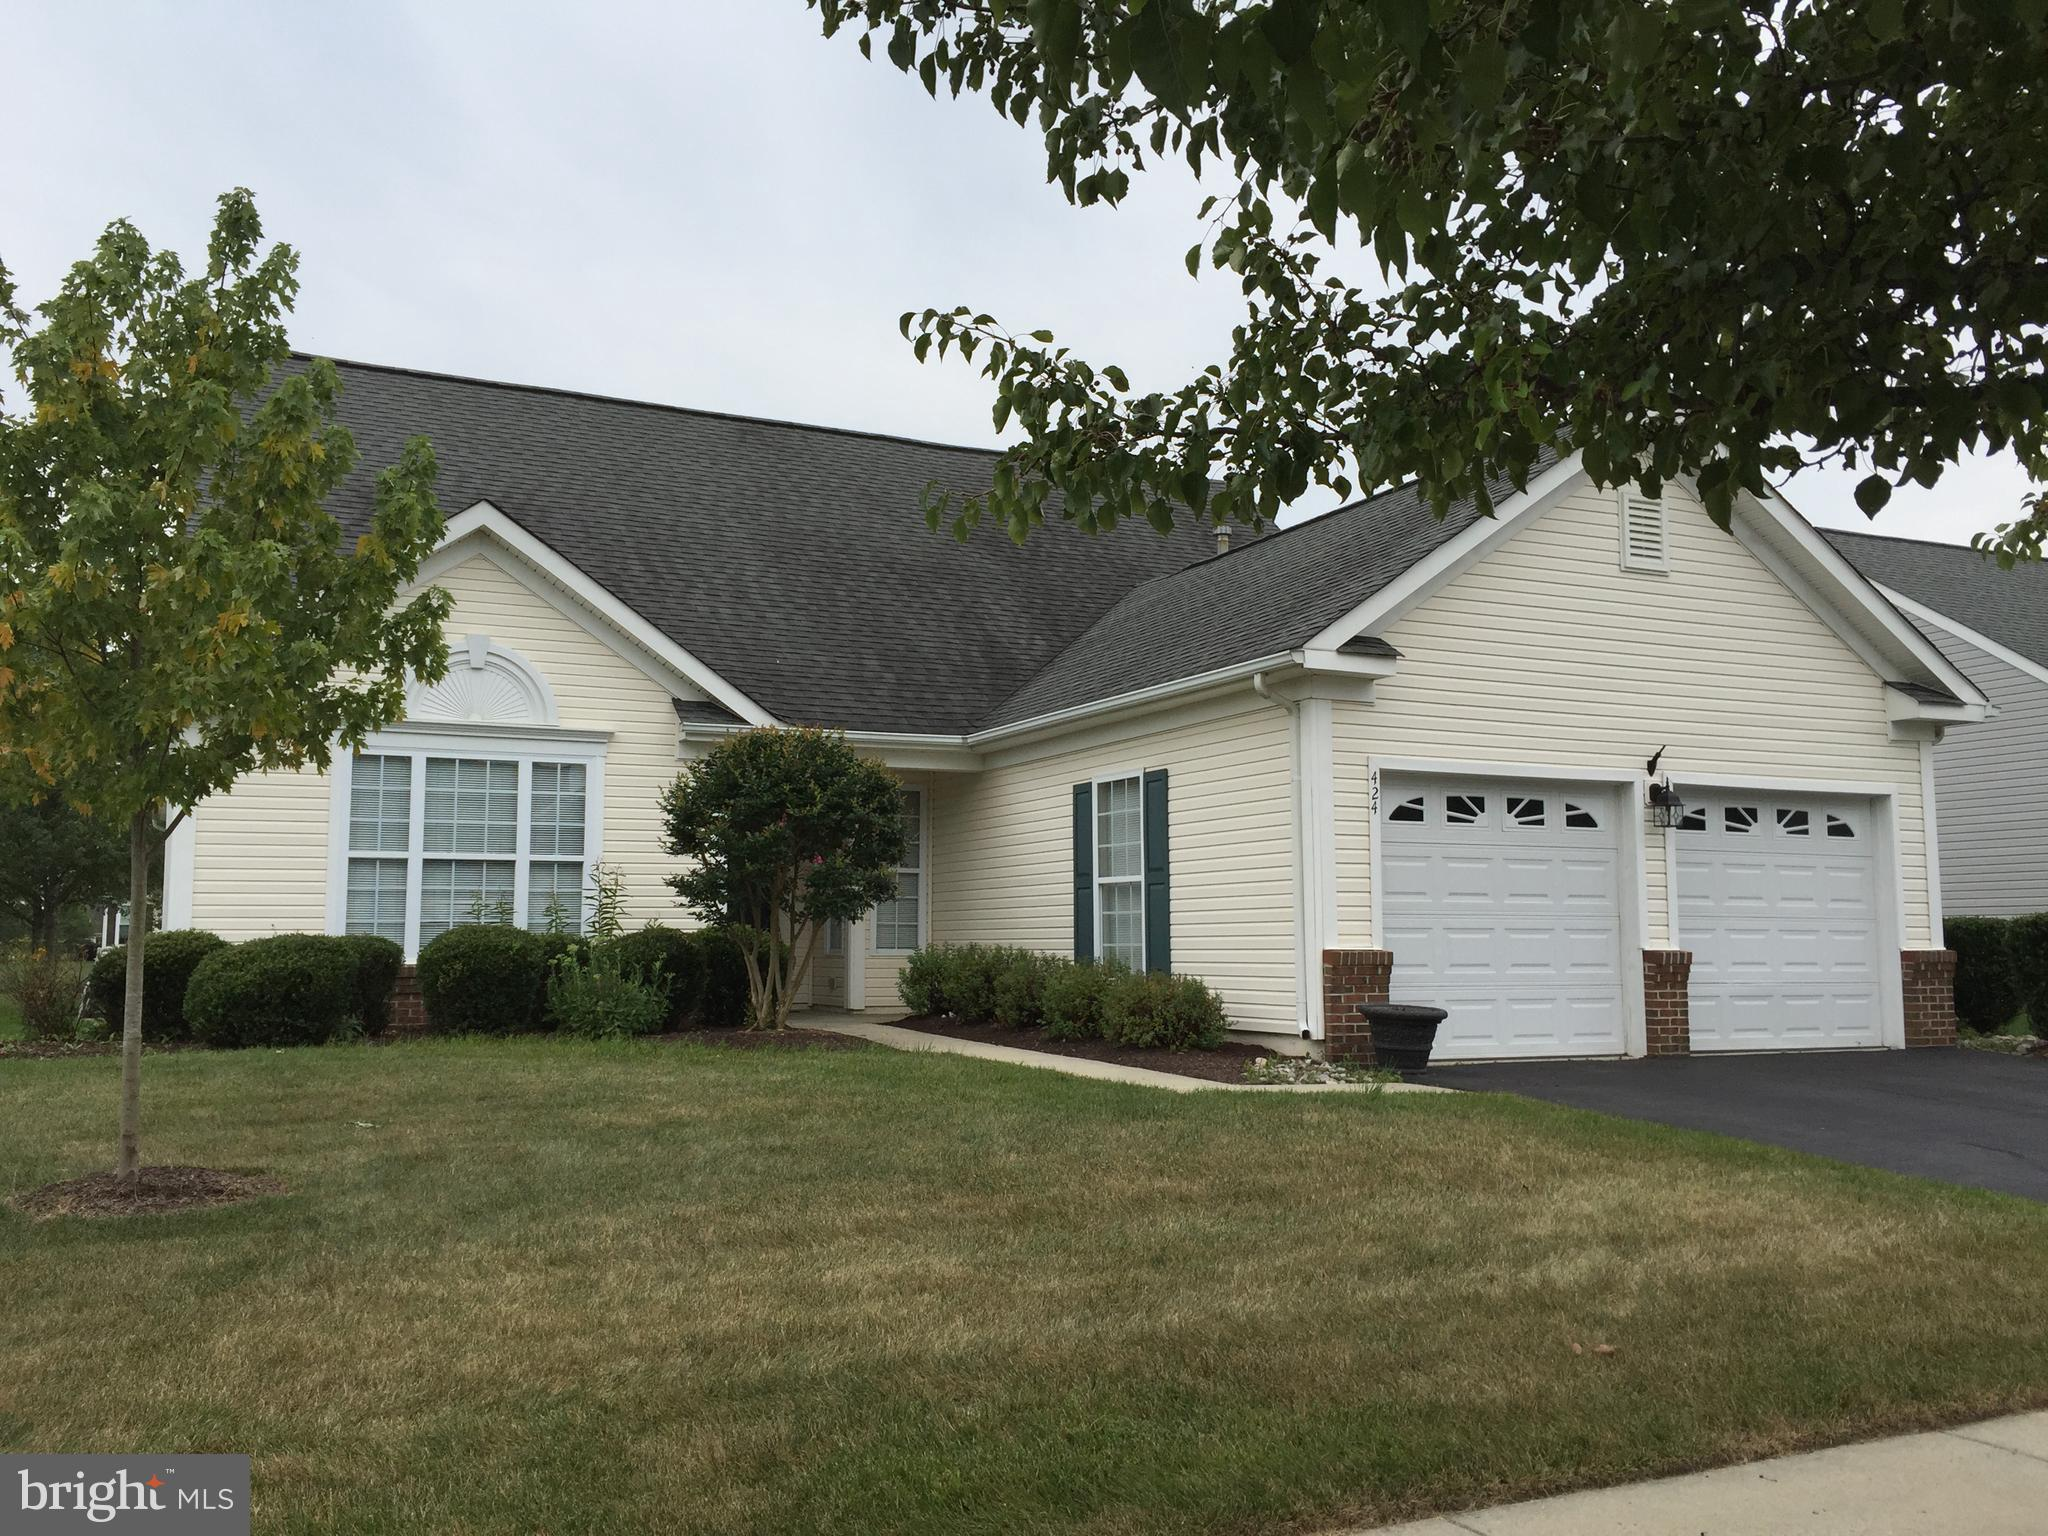 This 3 bedroom, 3 bath home is located in the 55+ Active Adult Community of Springmill, and is move-